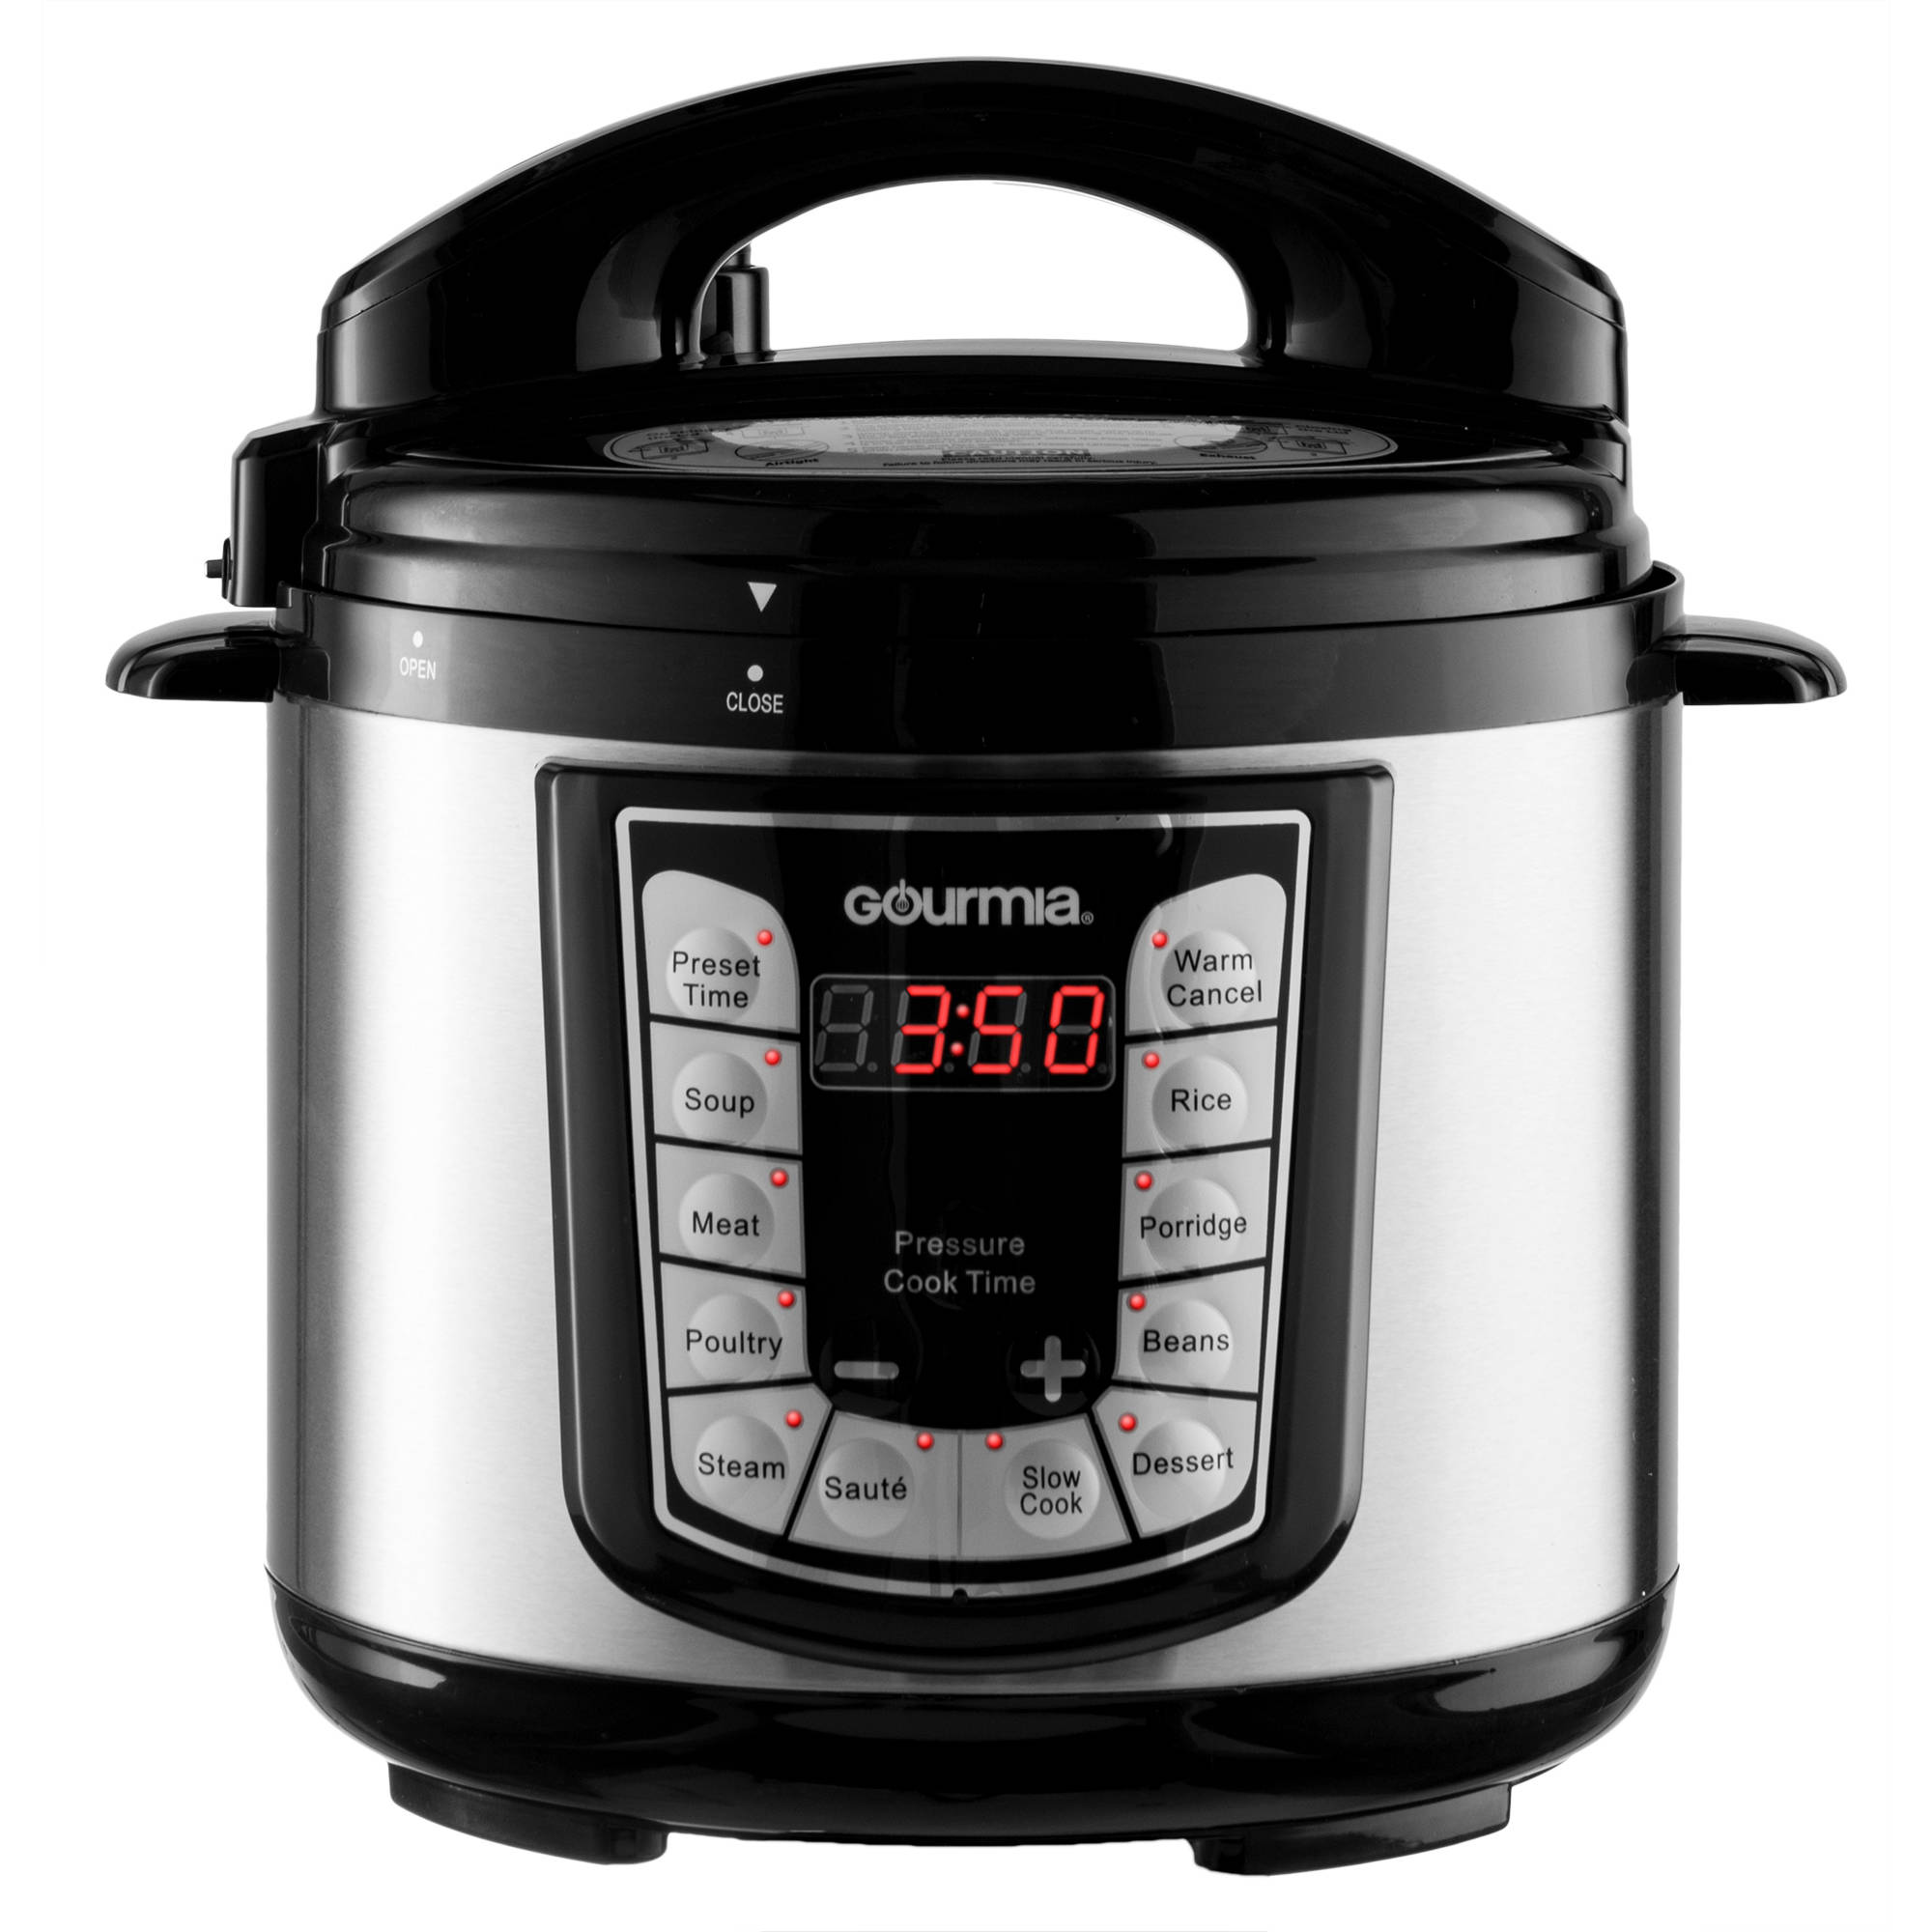 Gourmia GPC400 Stainless Steel 4-Quart Smart Pot Electric Digital Multifunction Pressure Cooker with 13 Programmable Cooking Modes